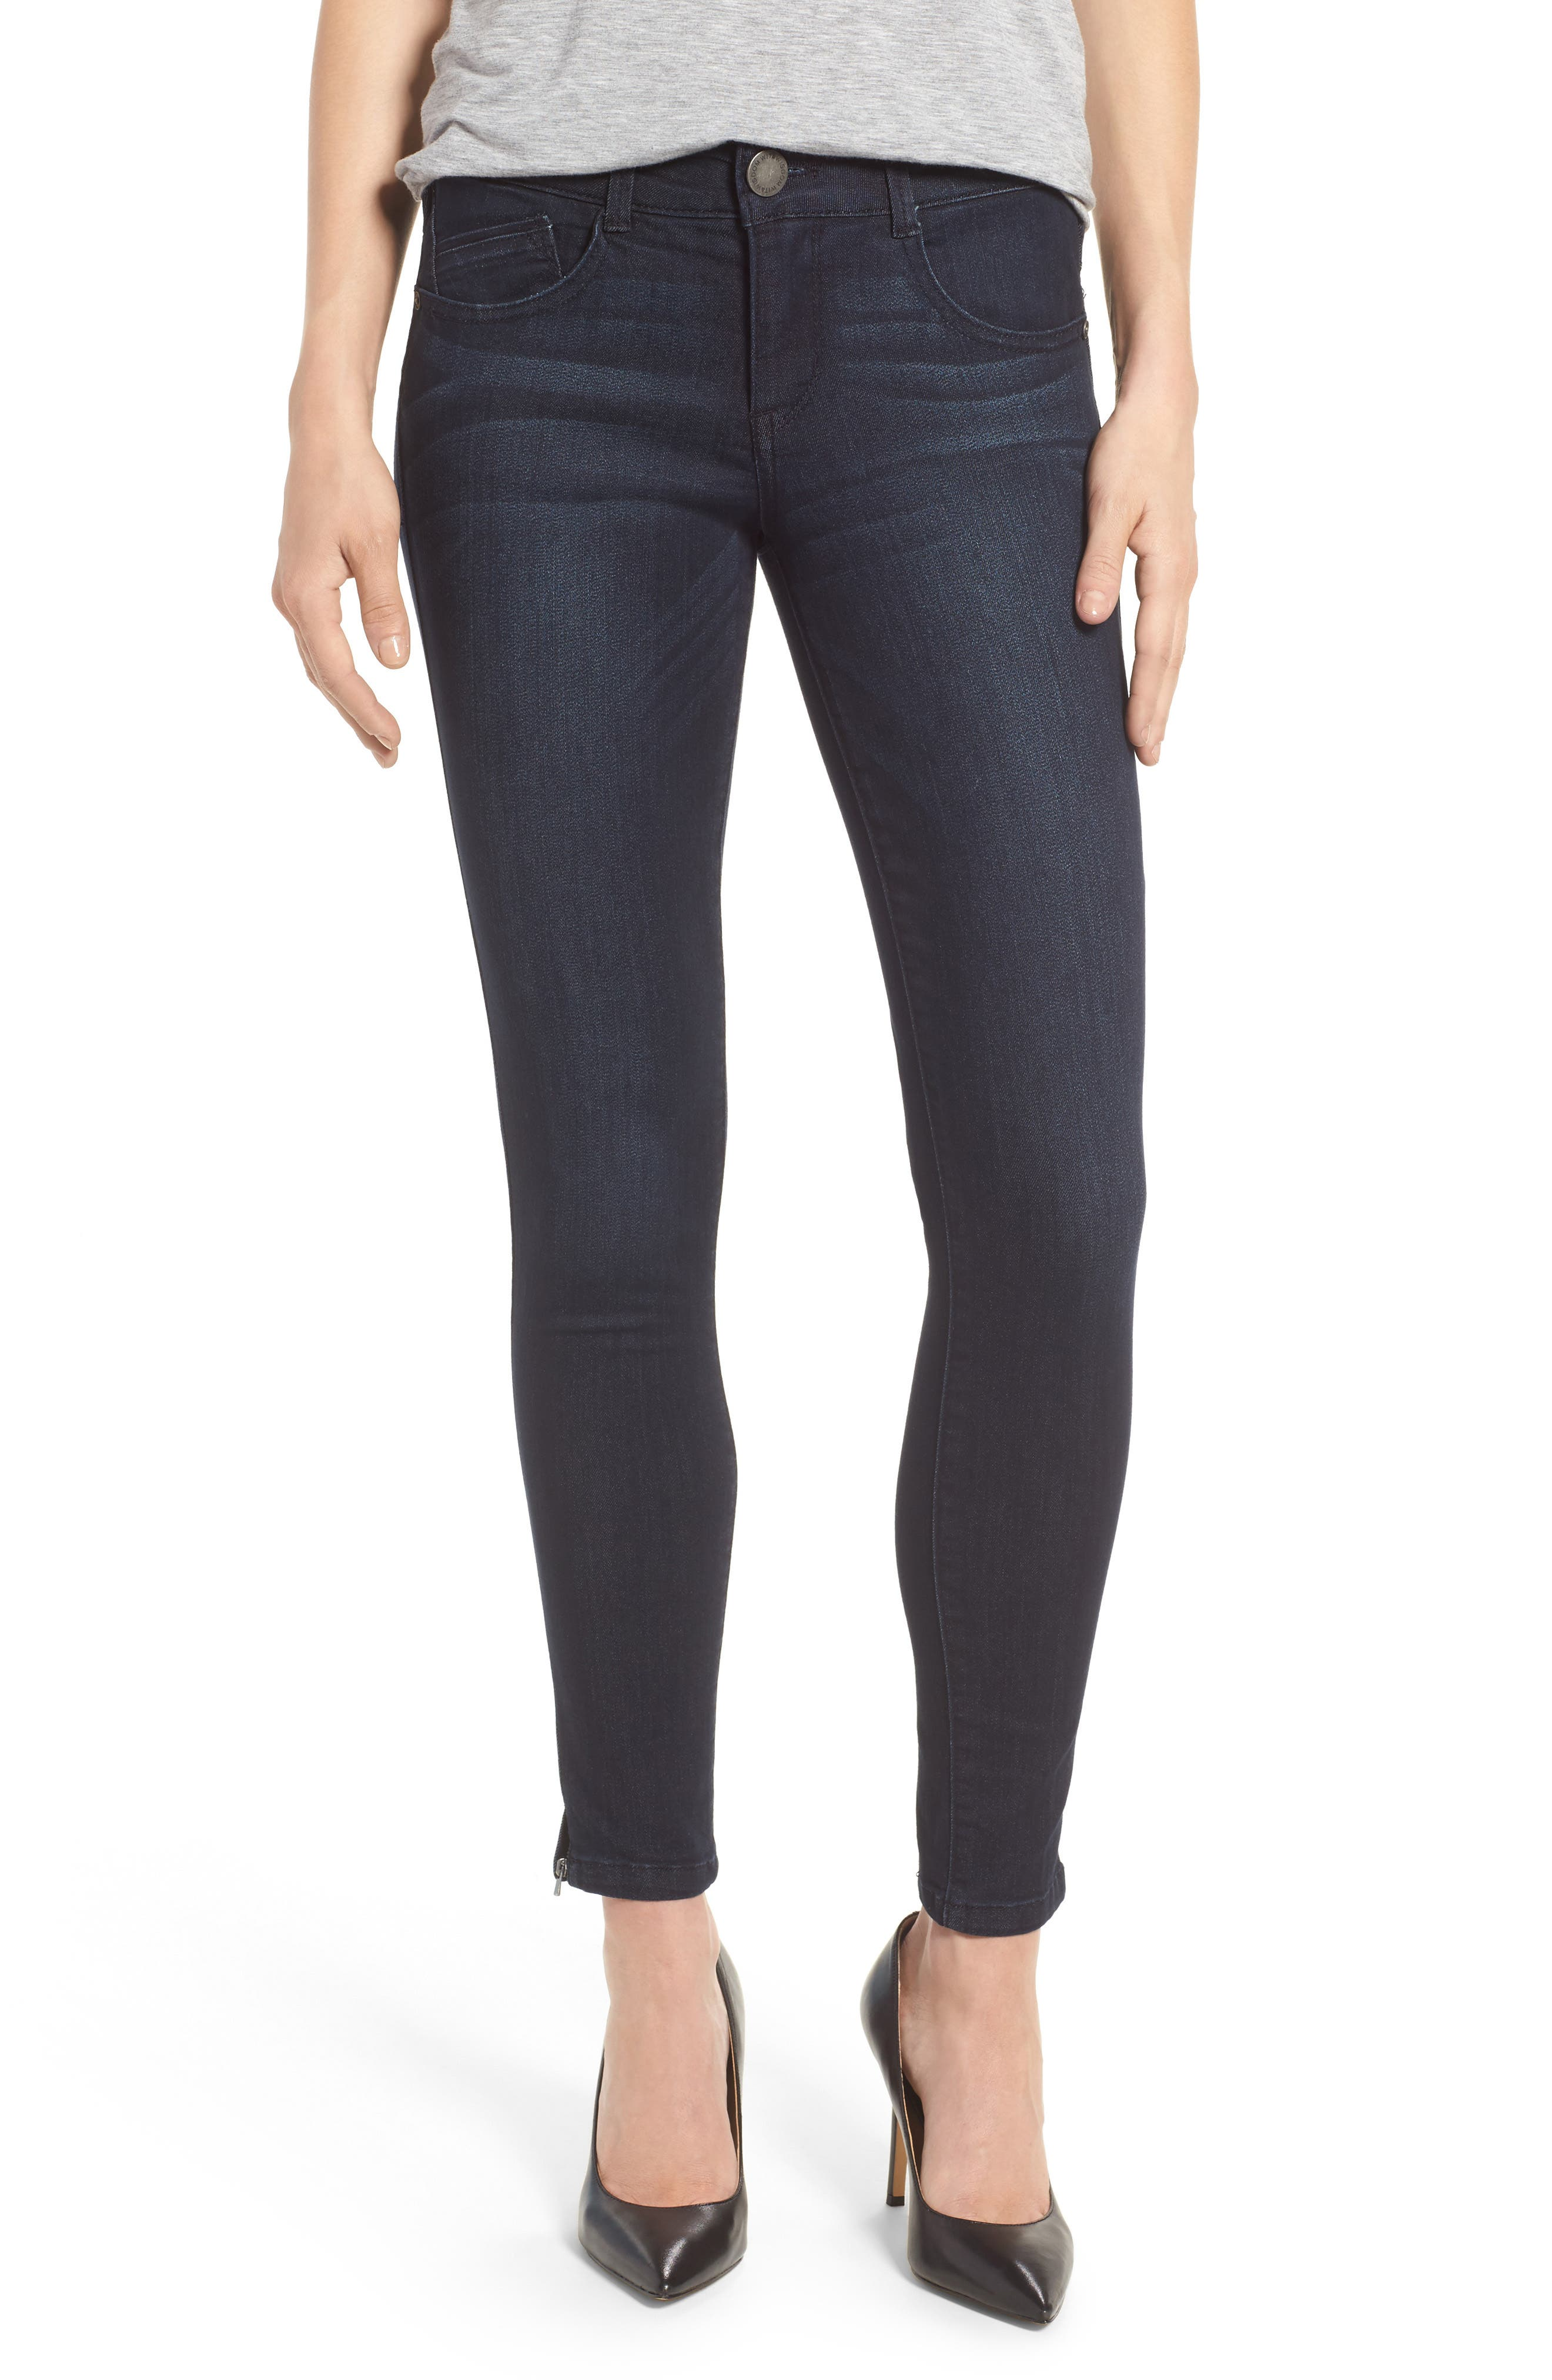 Main Image - Wit & Wisdom Ab-solution Ankle Zip Skinny Jeans (Nordstrom Exclusive)